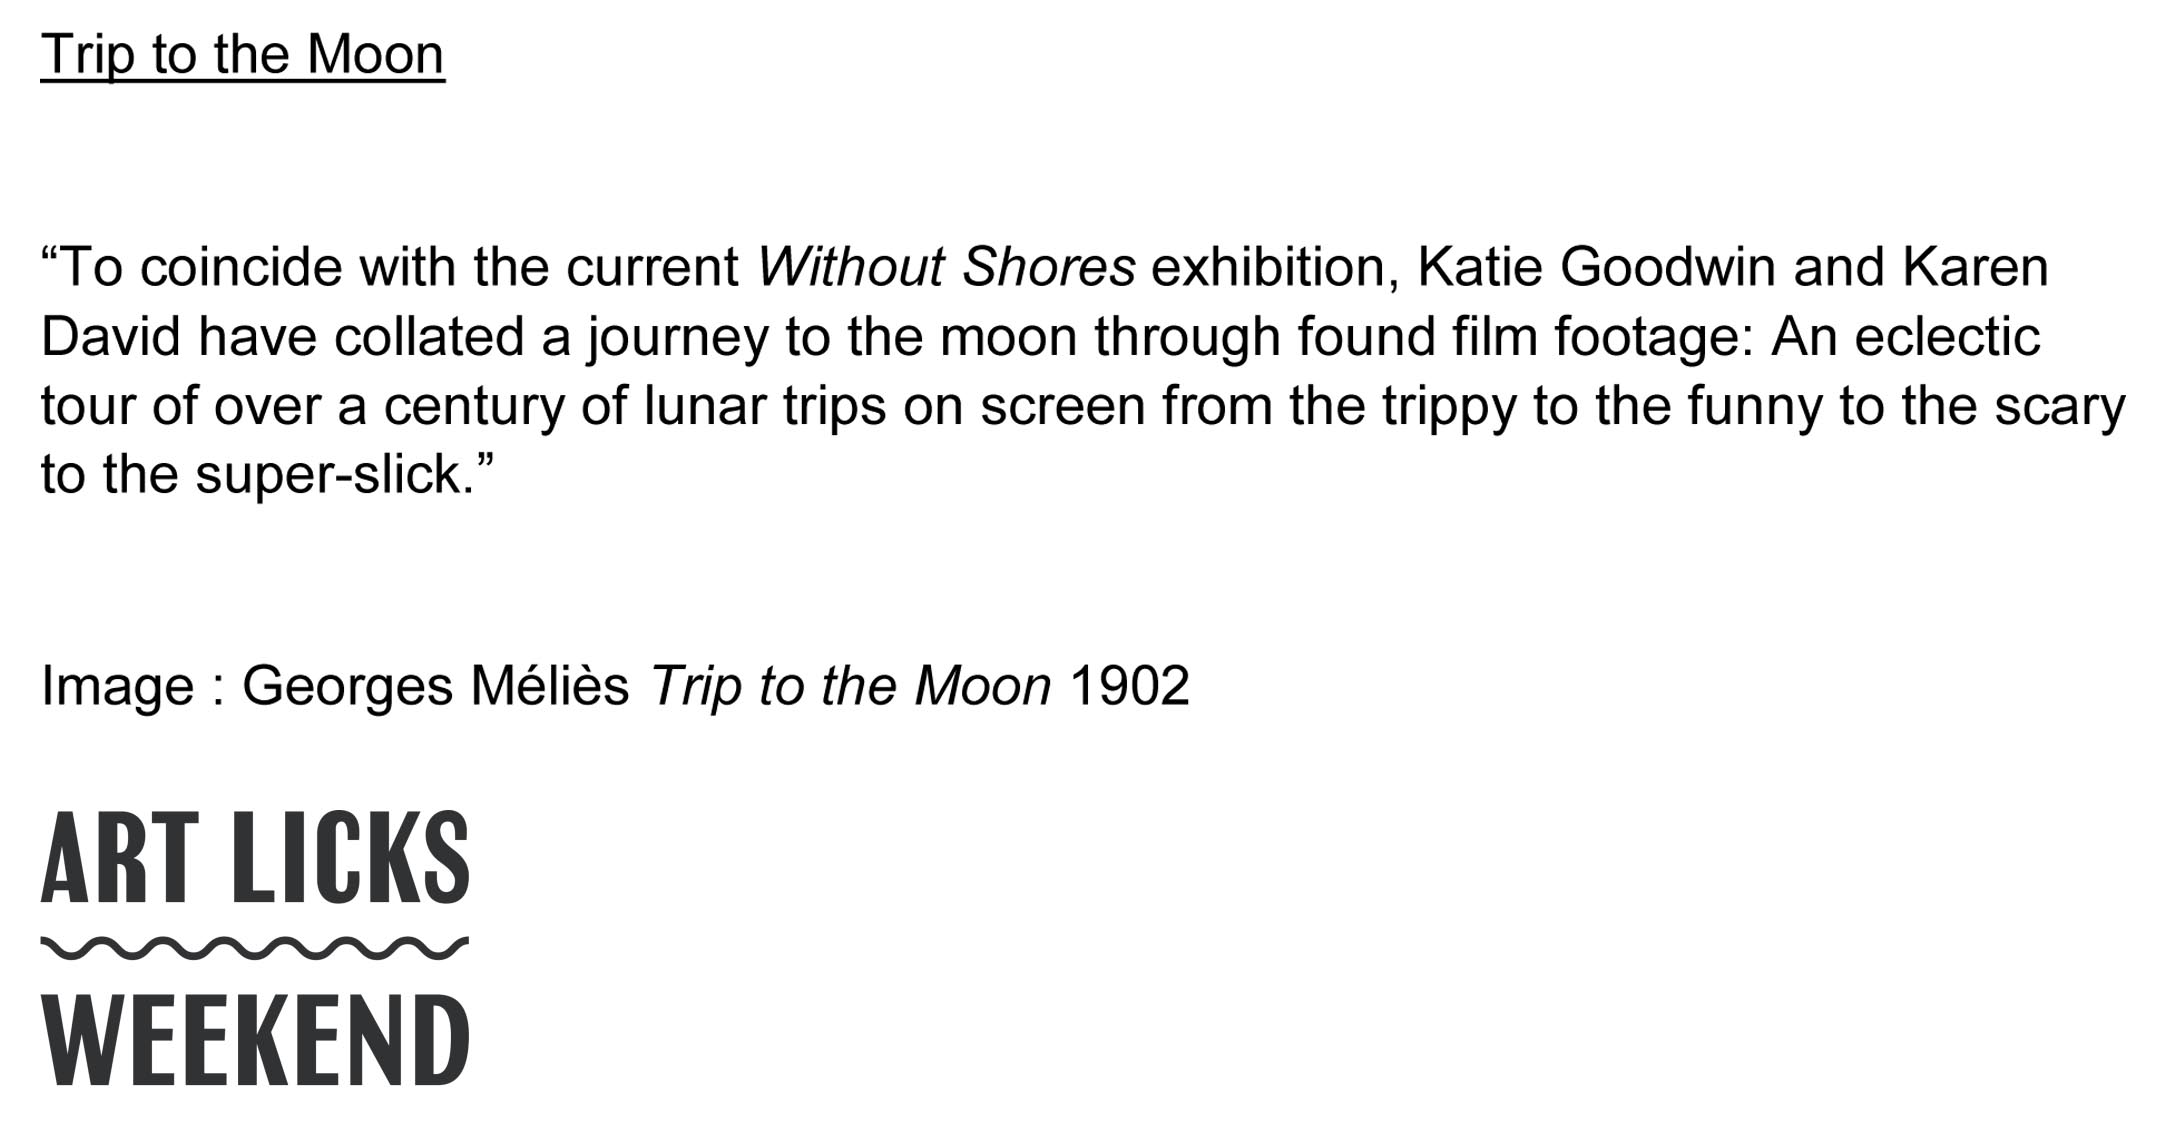 trip to the moonII